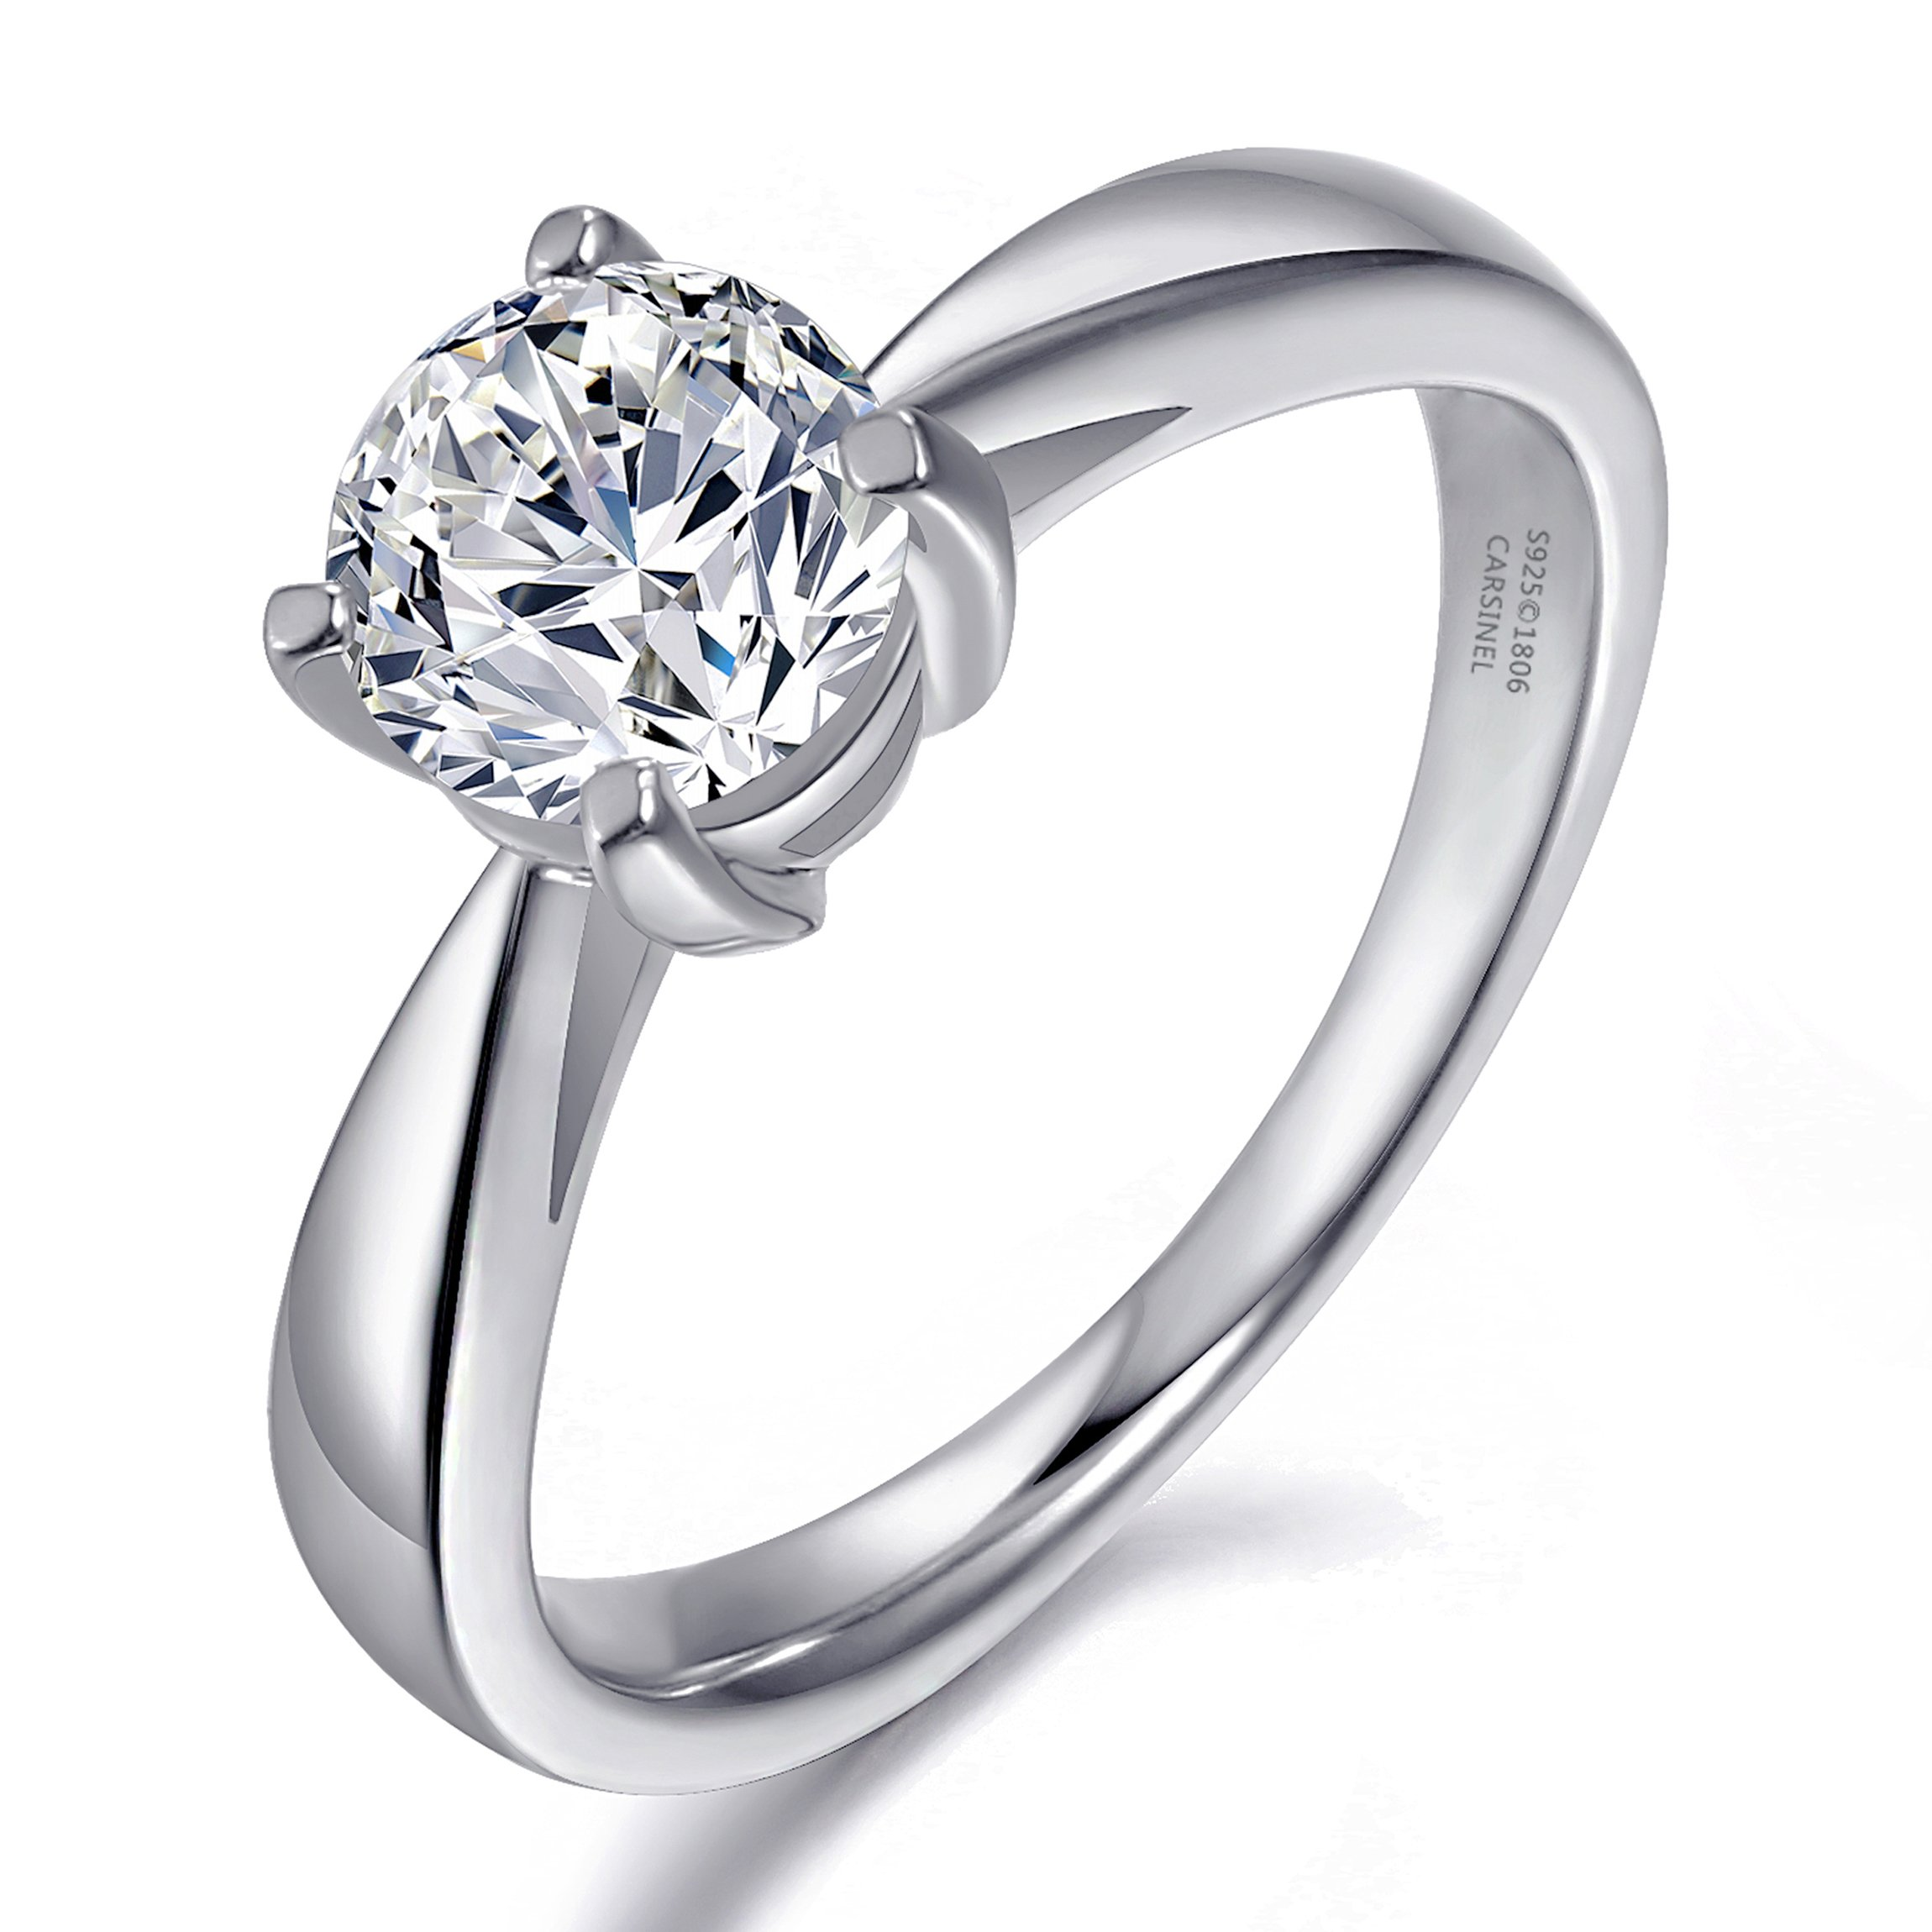 CARSINEL Luxury 1ct Cubic Zirconia 925 Sterling Silver Solitaire Engagement Wedding Ring for Women Sizes 4 to 9 (5)